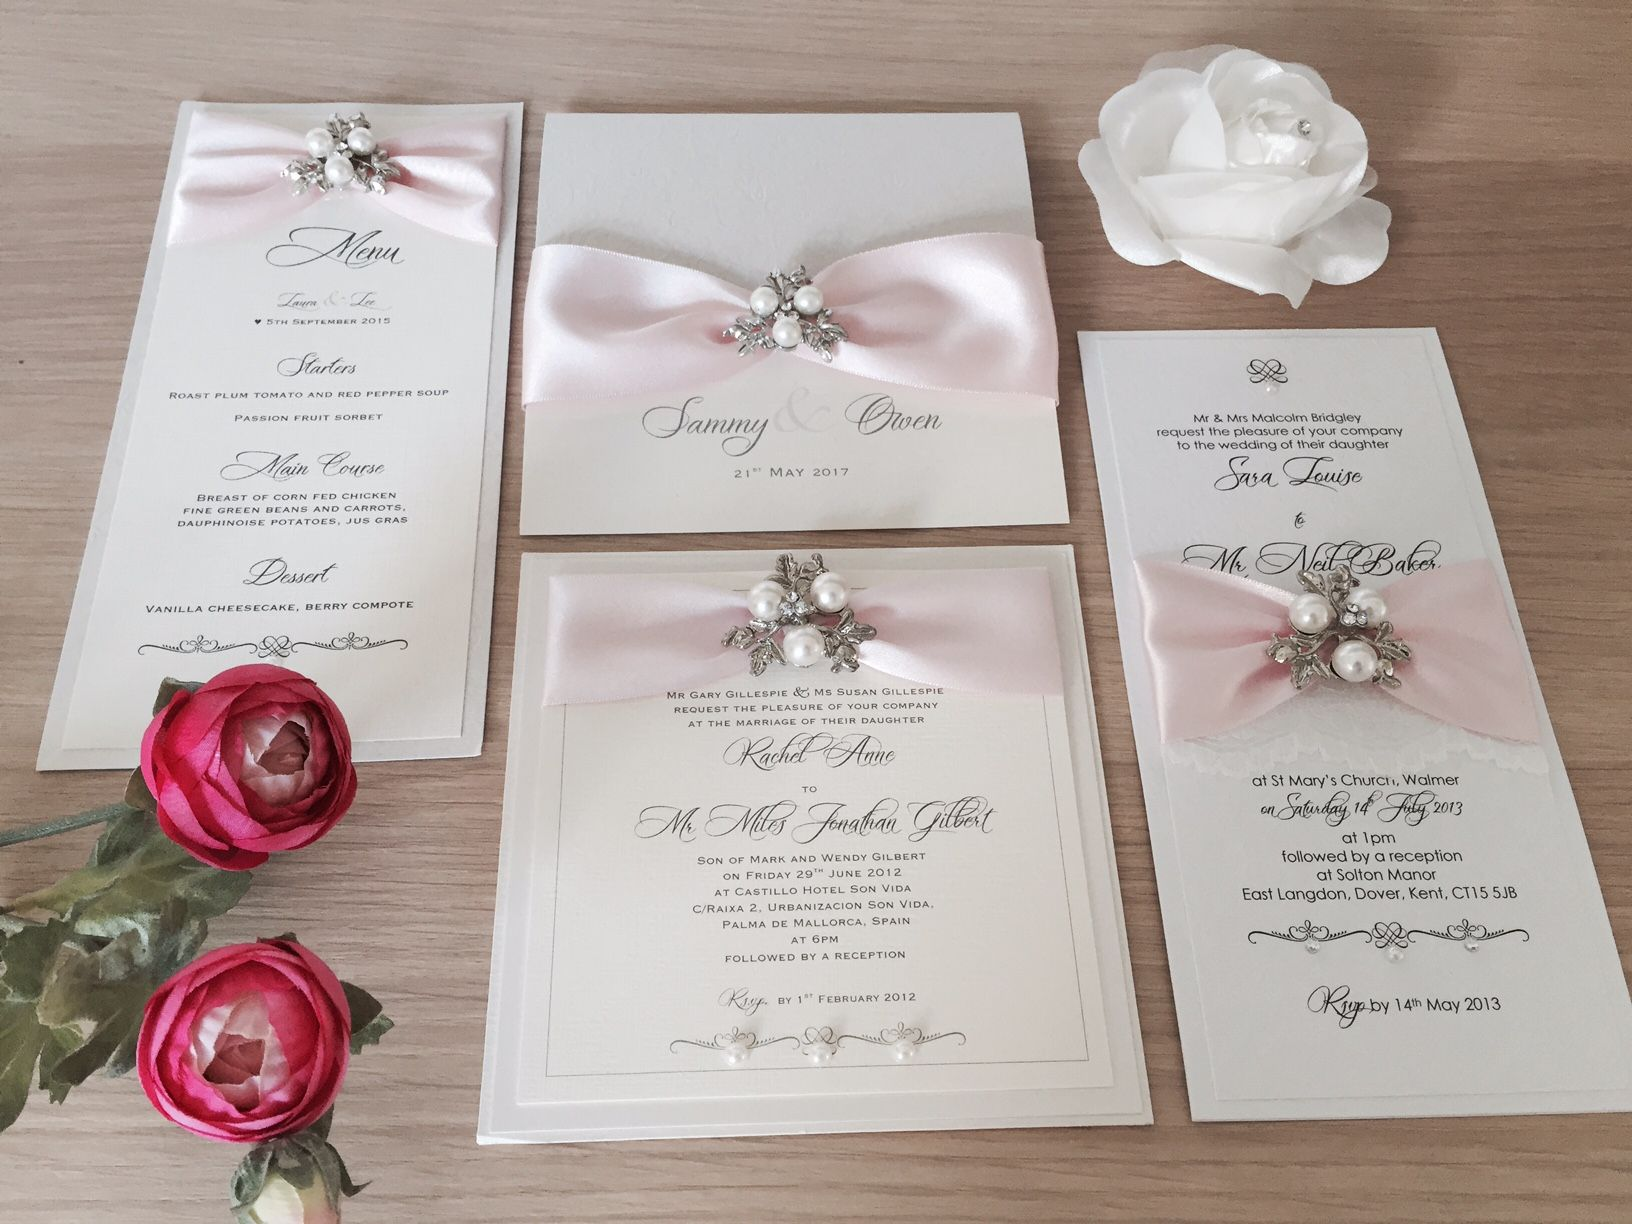 Elegant wedding invitations with pearl brooch